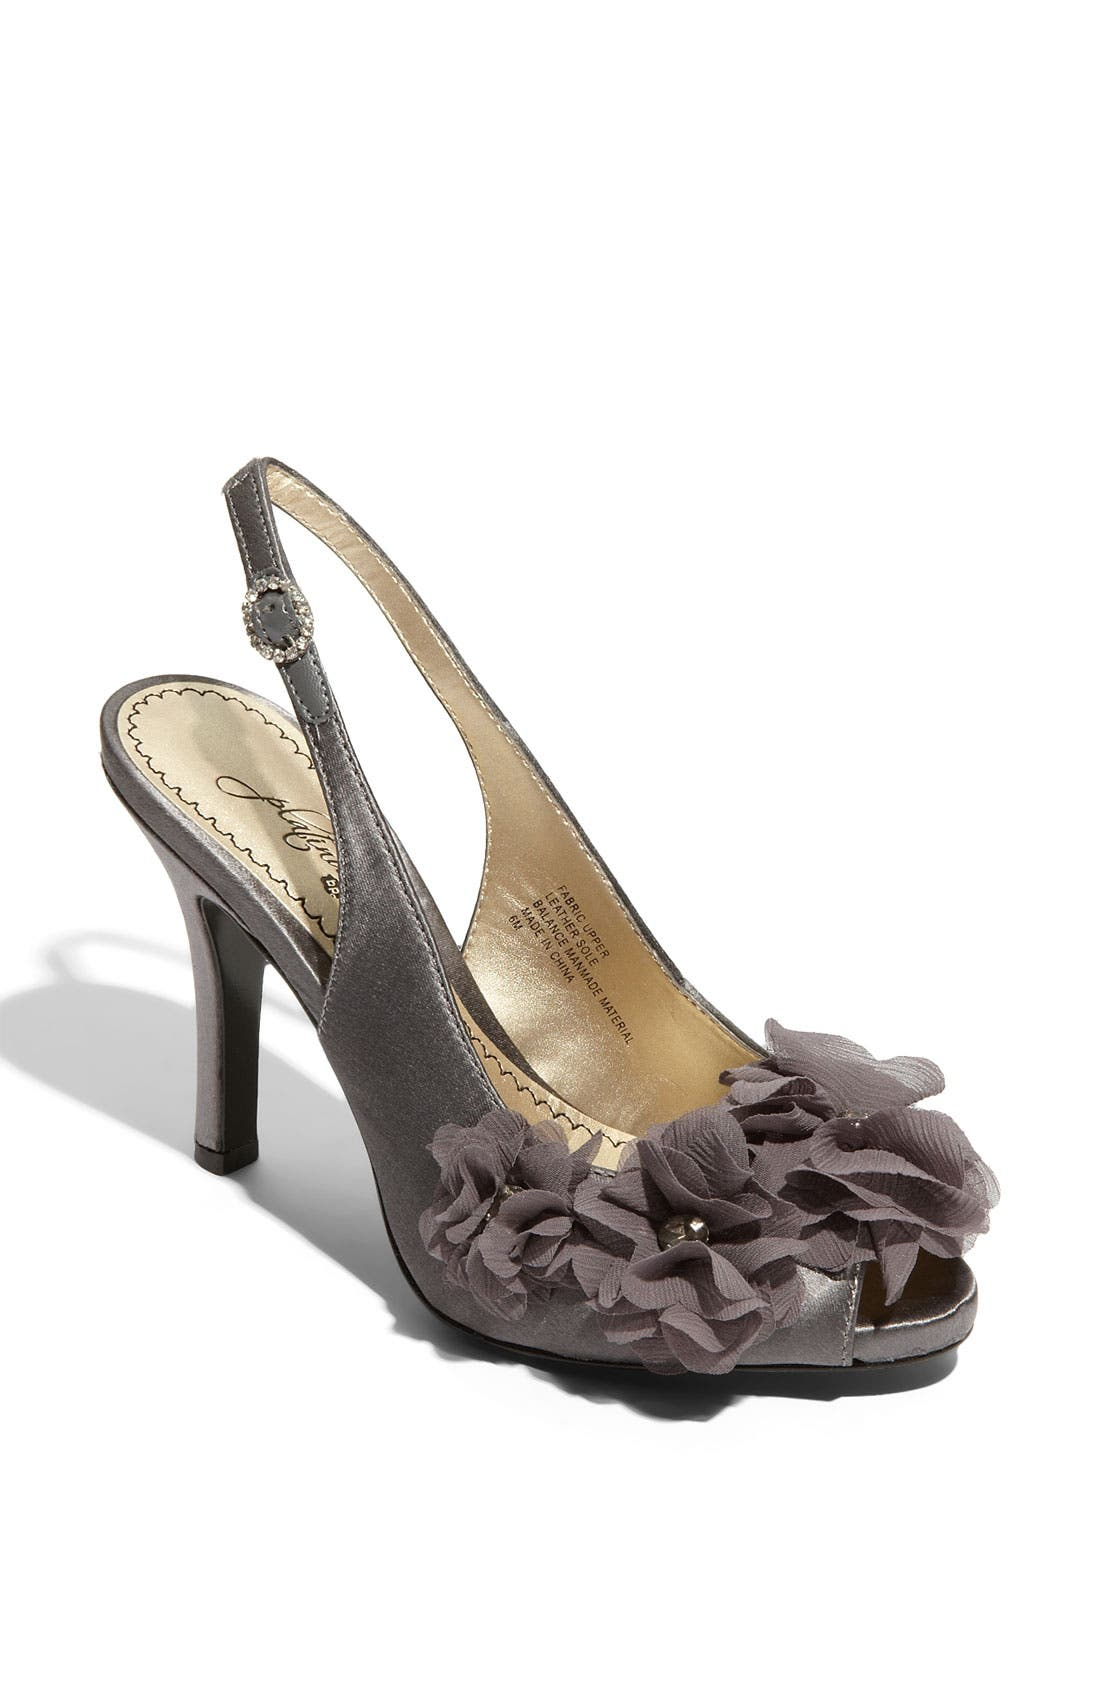 Main Image - BP. 'Summer' Satin Pump